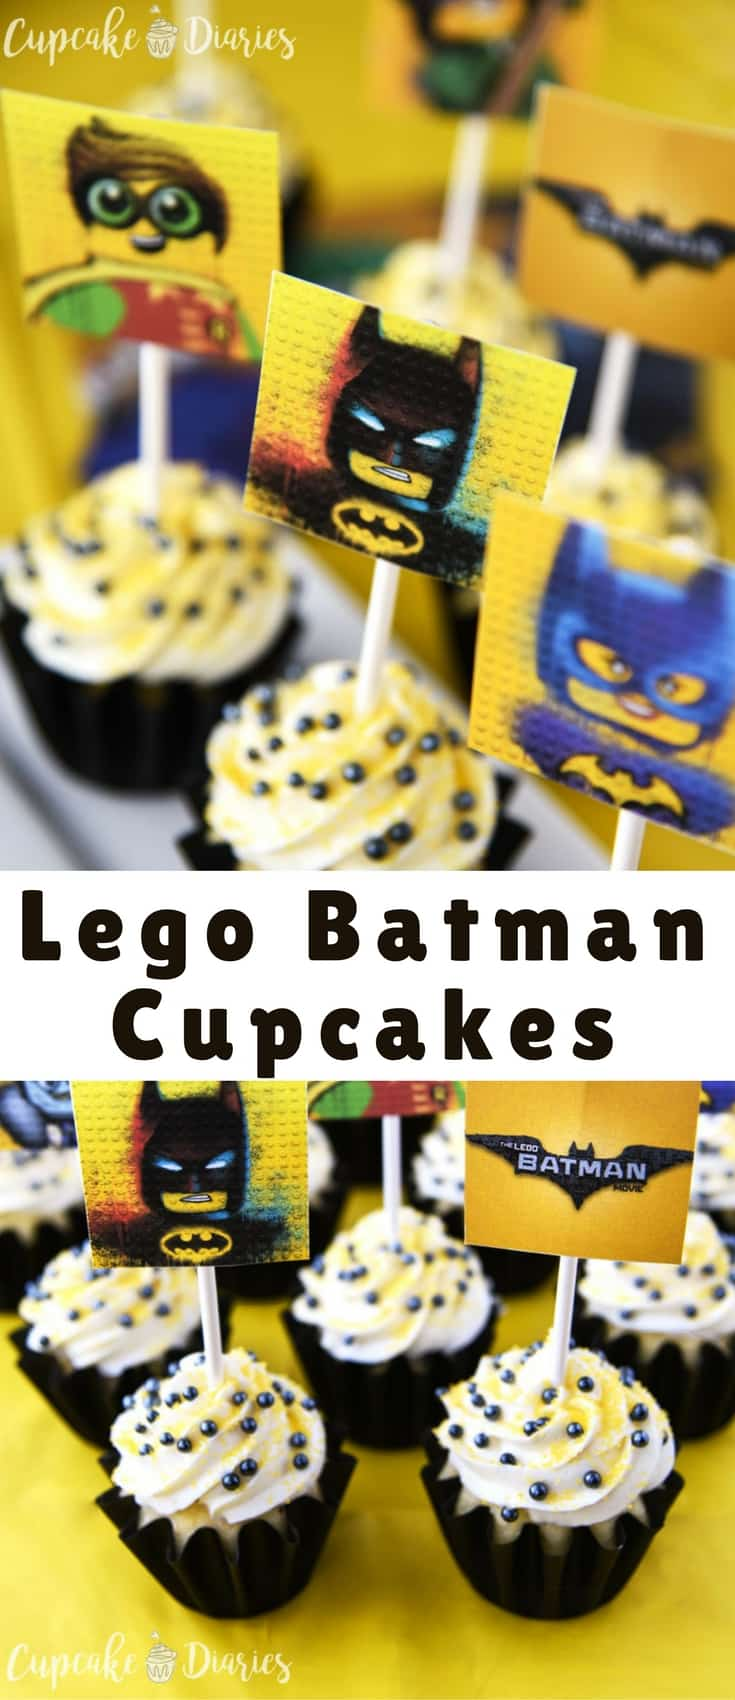 photo regarding Batman Cupcake Toppers Printable identified as Lego Batman Cupcakes with Cost-free Printable Toppers - Blogger Bests